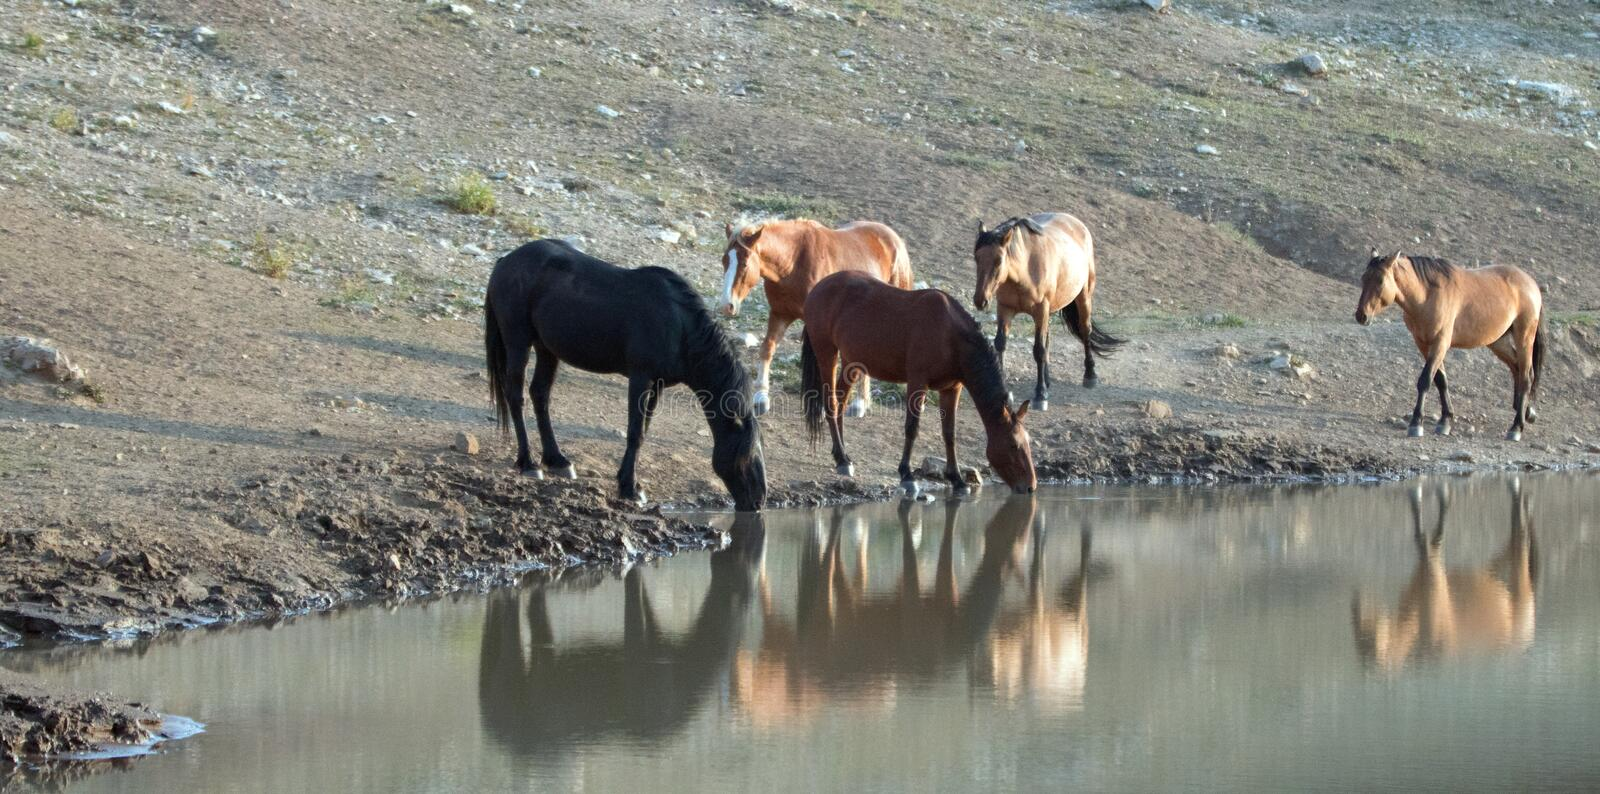 Herd of wild horses reflecting in the water while drinking at the waterhole in the Pryor Mountains Wild Horse Range in Montana USA. Herd of wild horses stock image